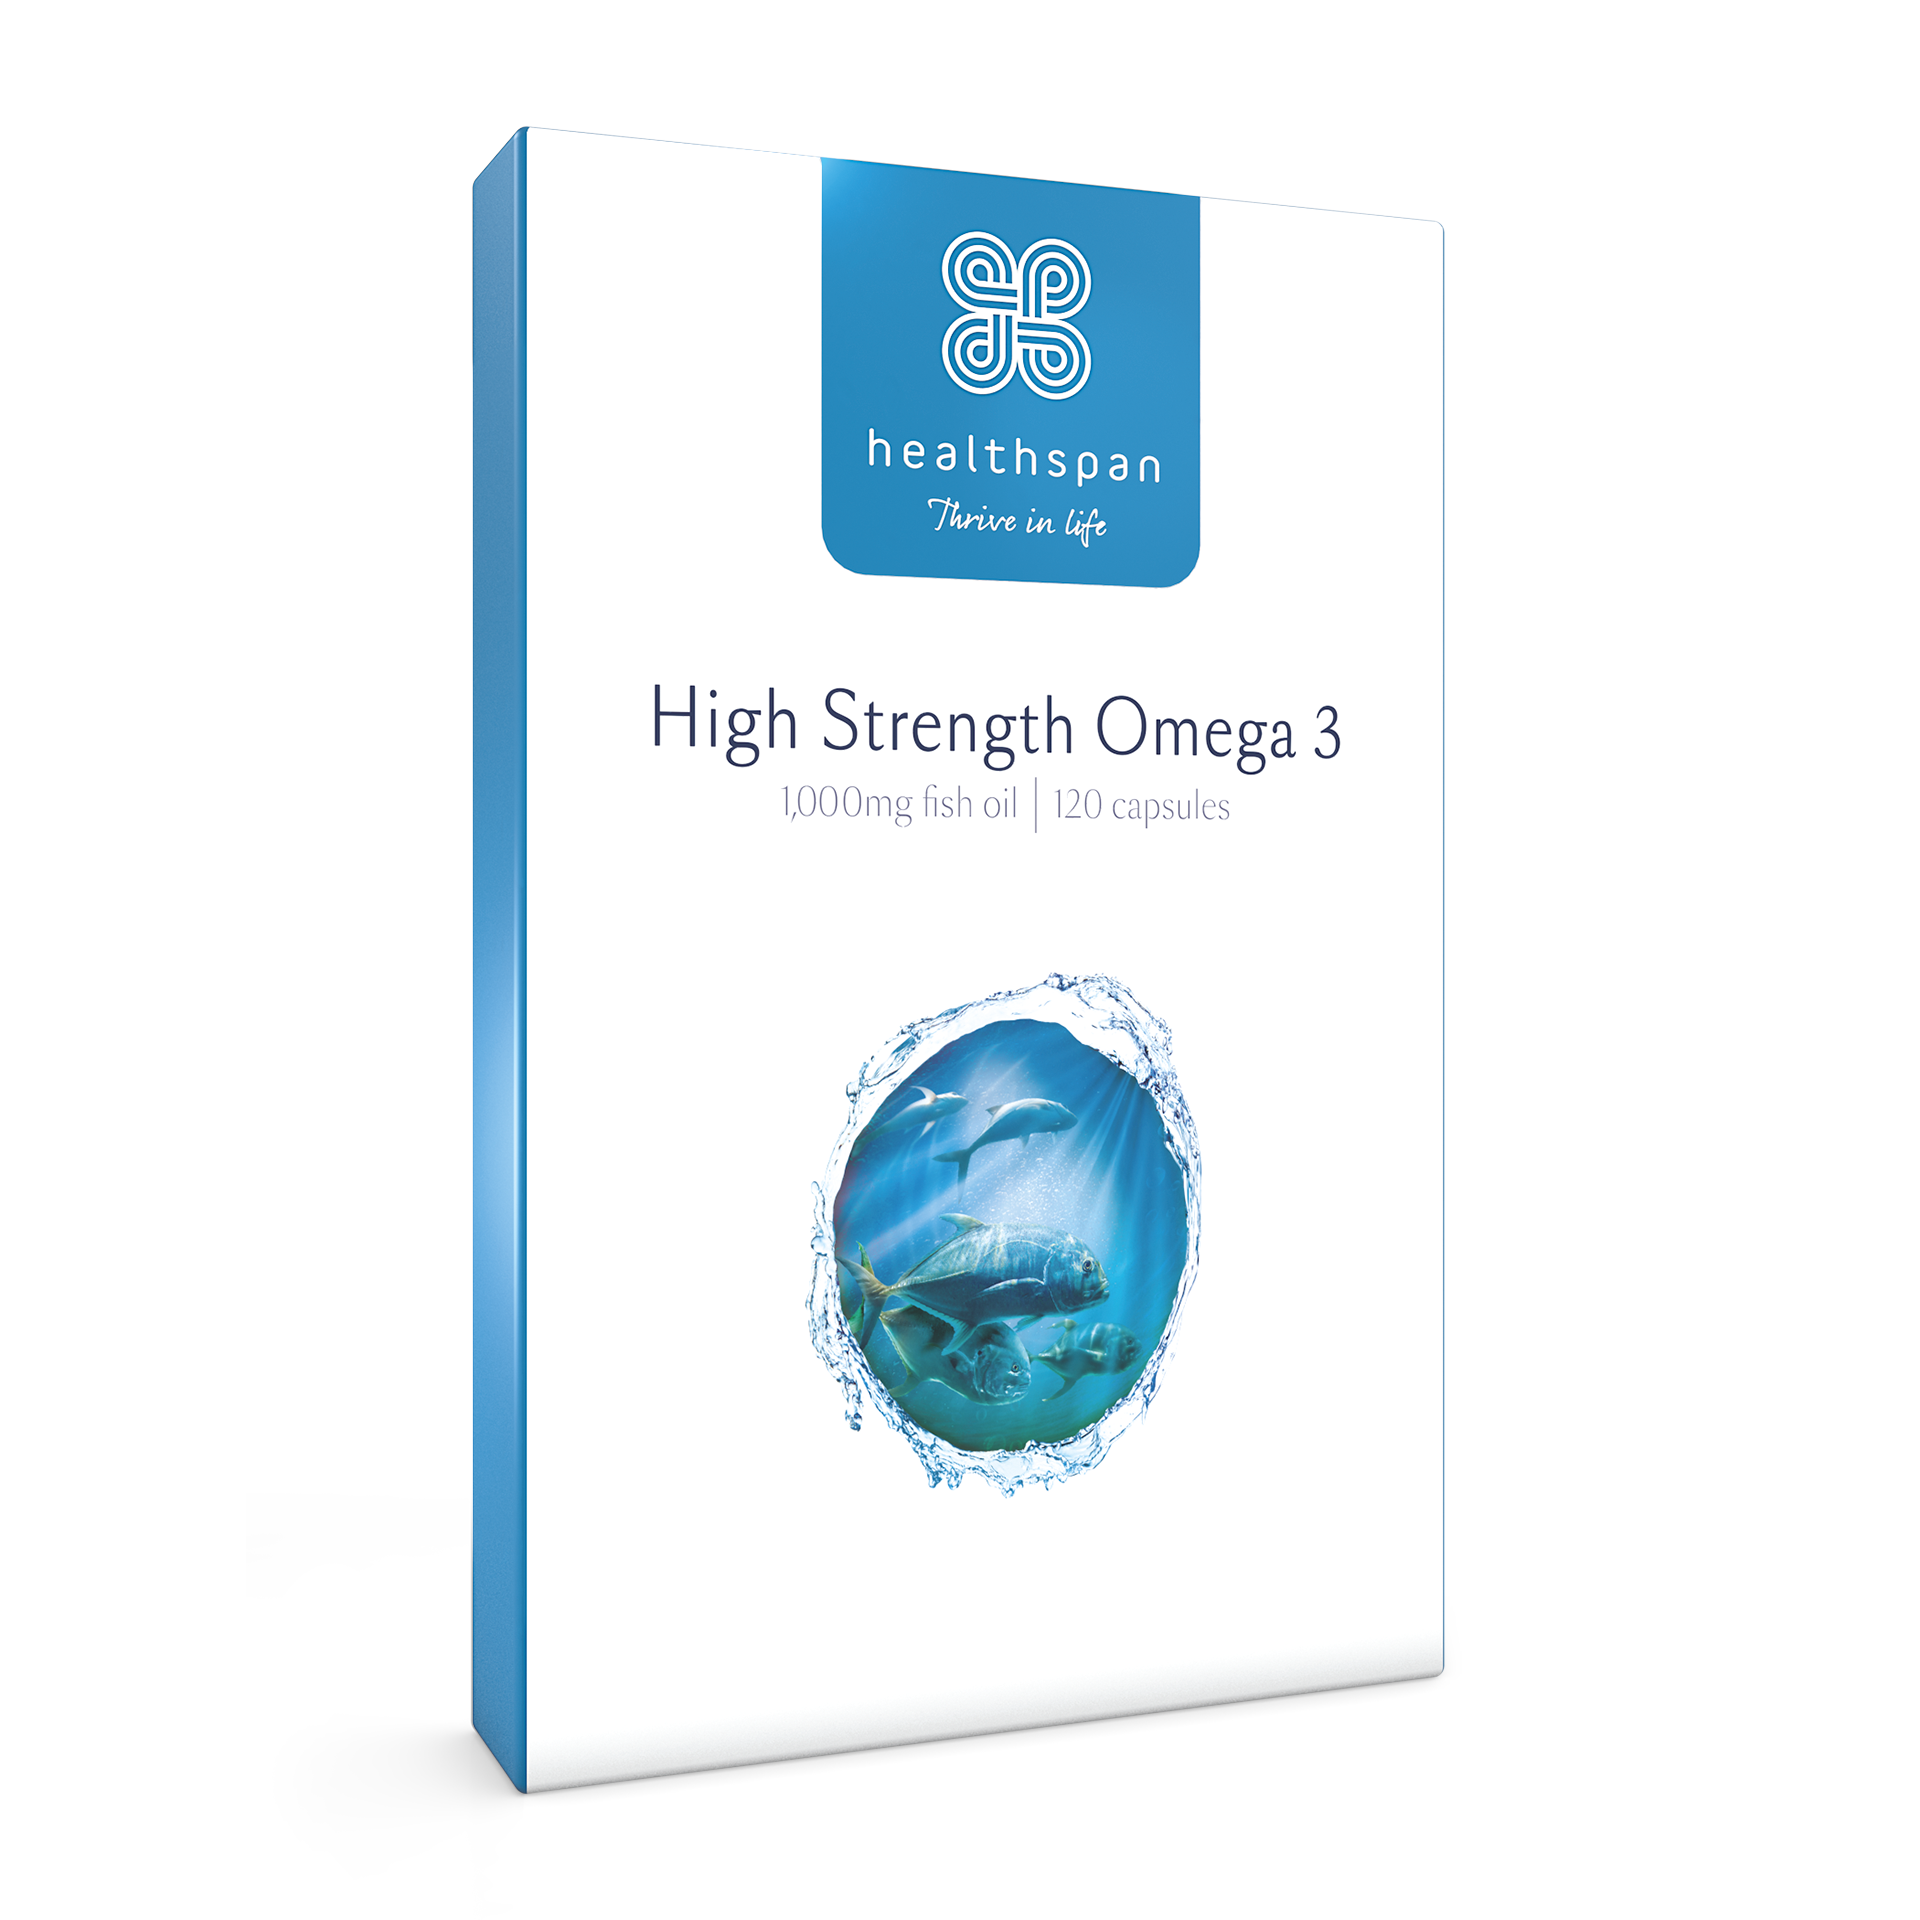 High Strength Omega 3 1,000mg